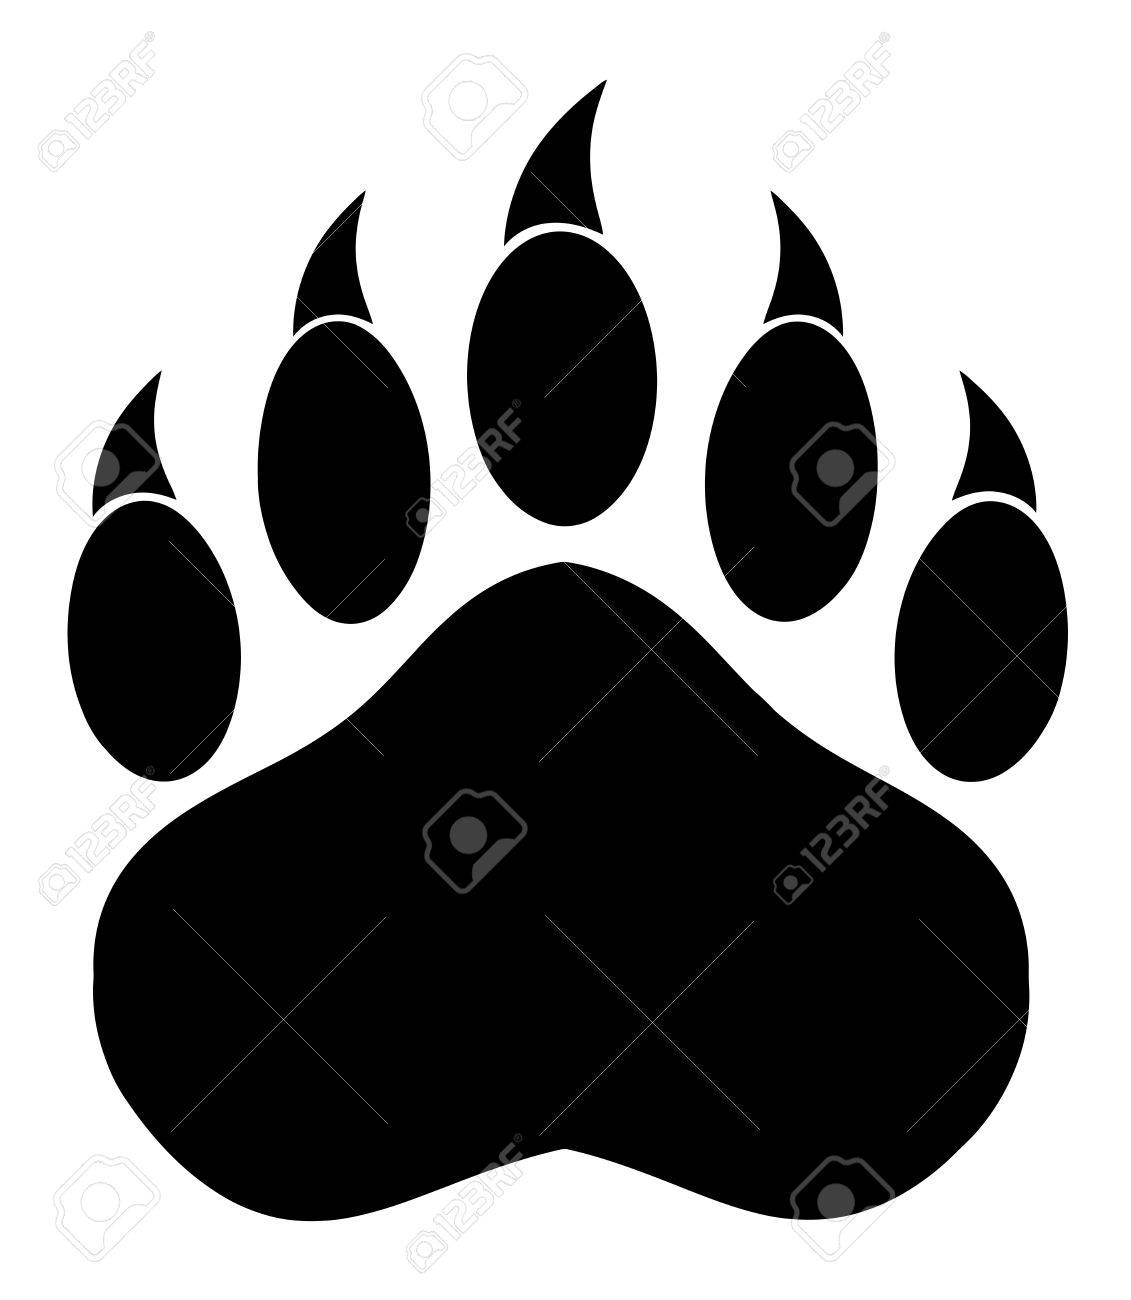 Black Bear Paw With Claws. Illustration Isolated On White - 53673977